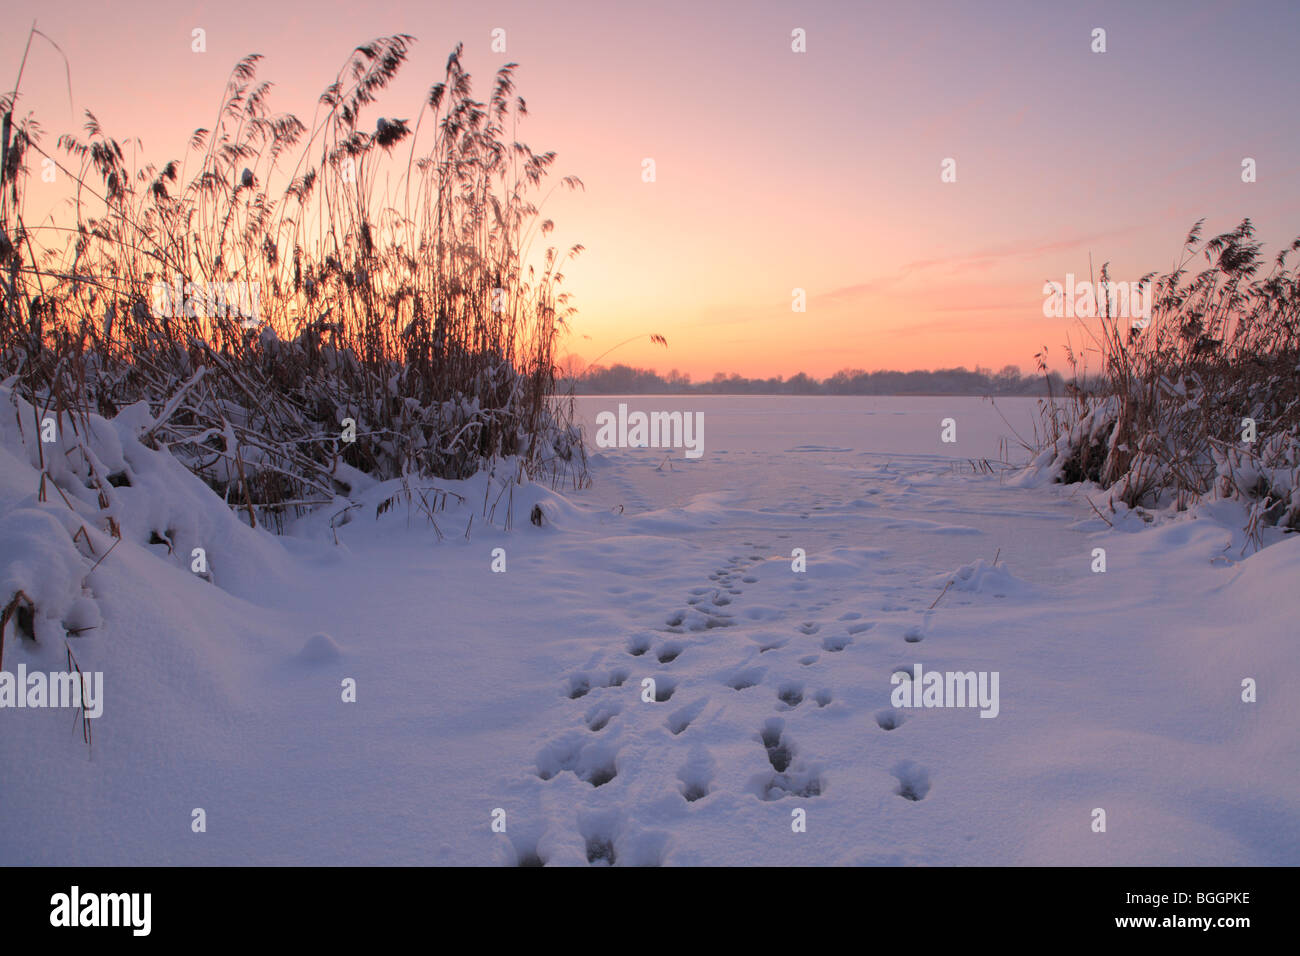 animal tracks in snow on frozen Posthorn lake (Posthornsee) in Halle (Germany) at dusk, Posthornsee in Halle (Saale) Stock Photo